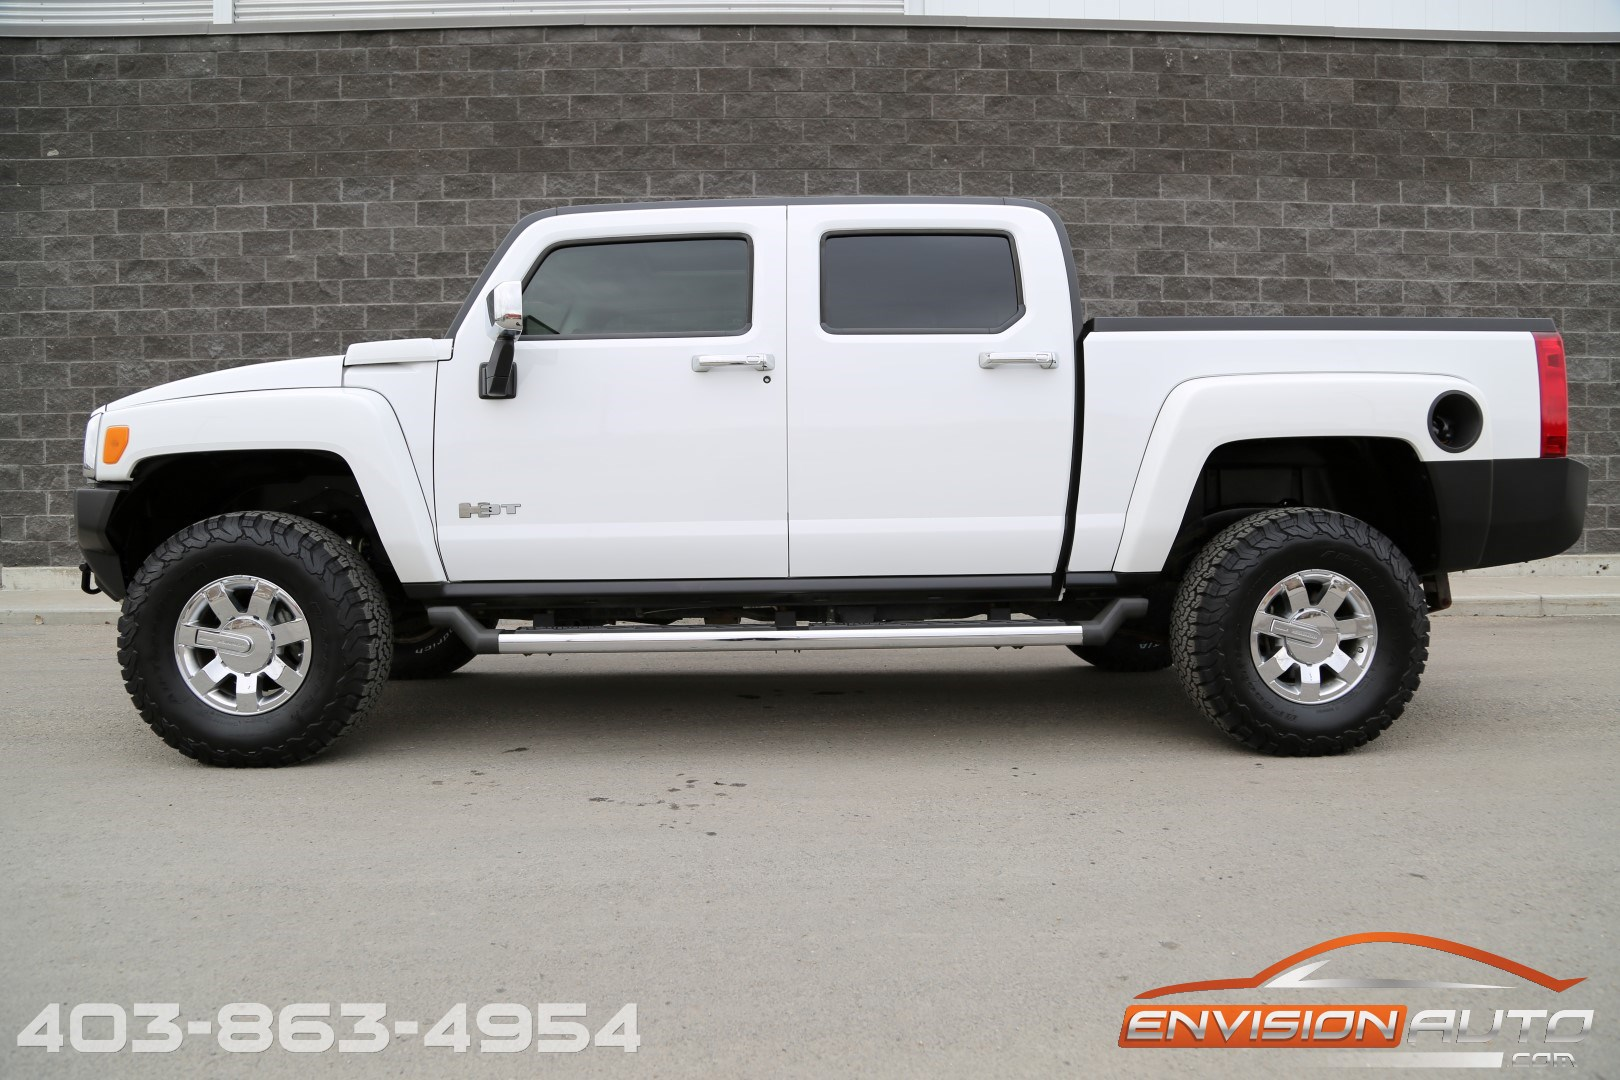 2010 H3t Hummer Truck Alpha Edition 5 3l V8 Envision Auto Calgary Highline Luxury Sports